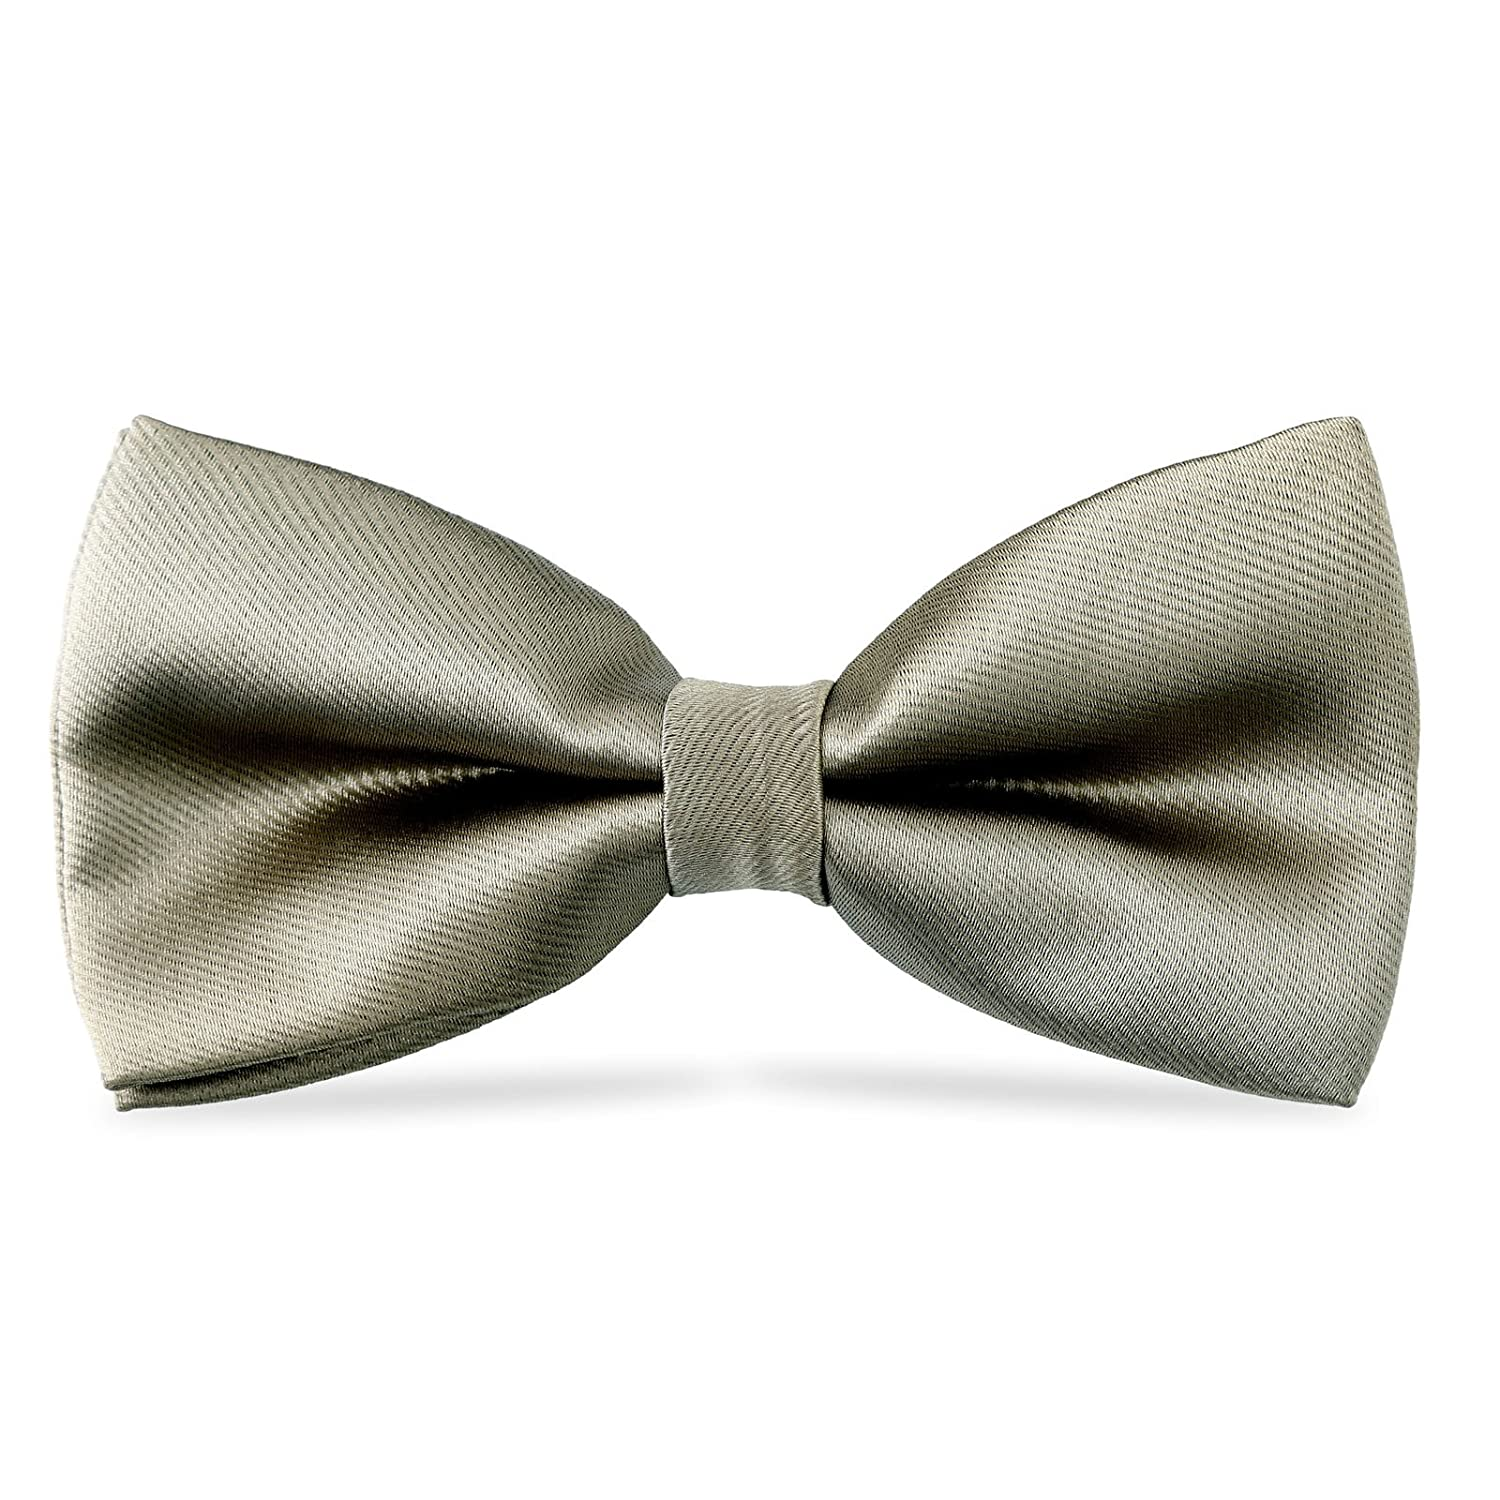 WELROG Pre Tied Solid Color kids boys children bow tie and adjustable length 10 x 5 cm silk material(Gray)